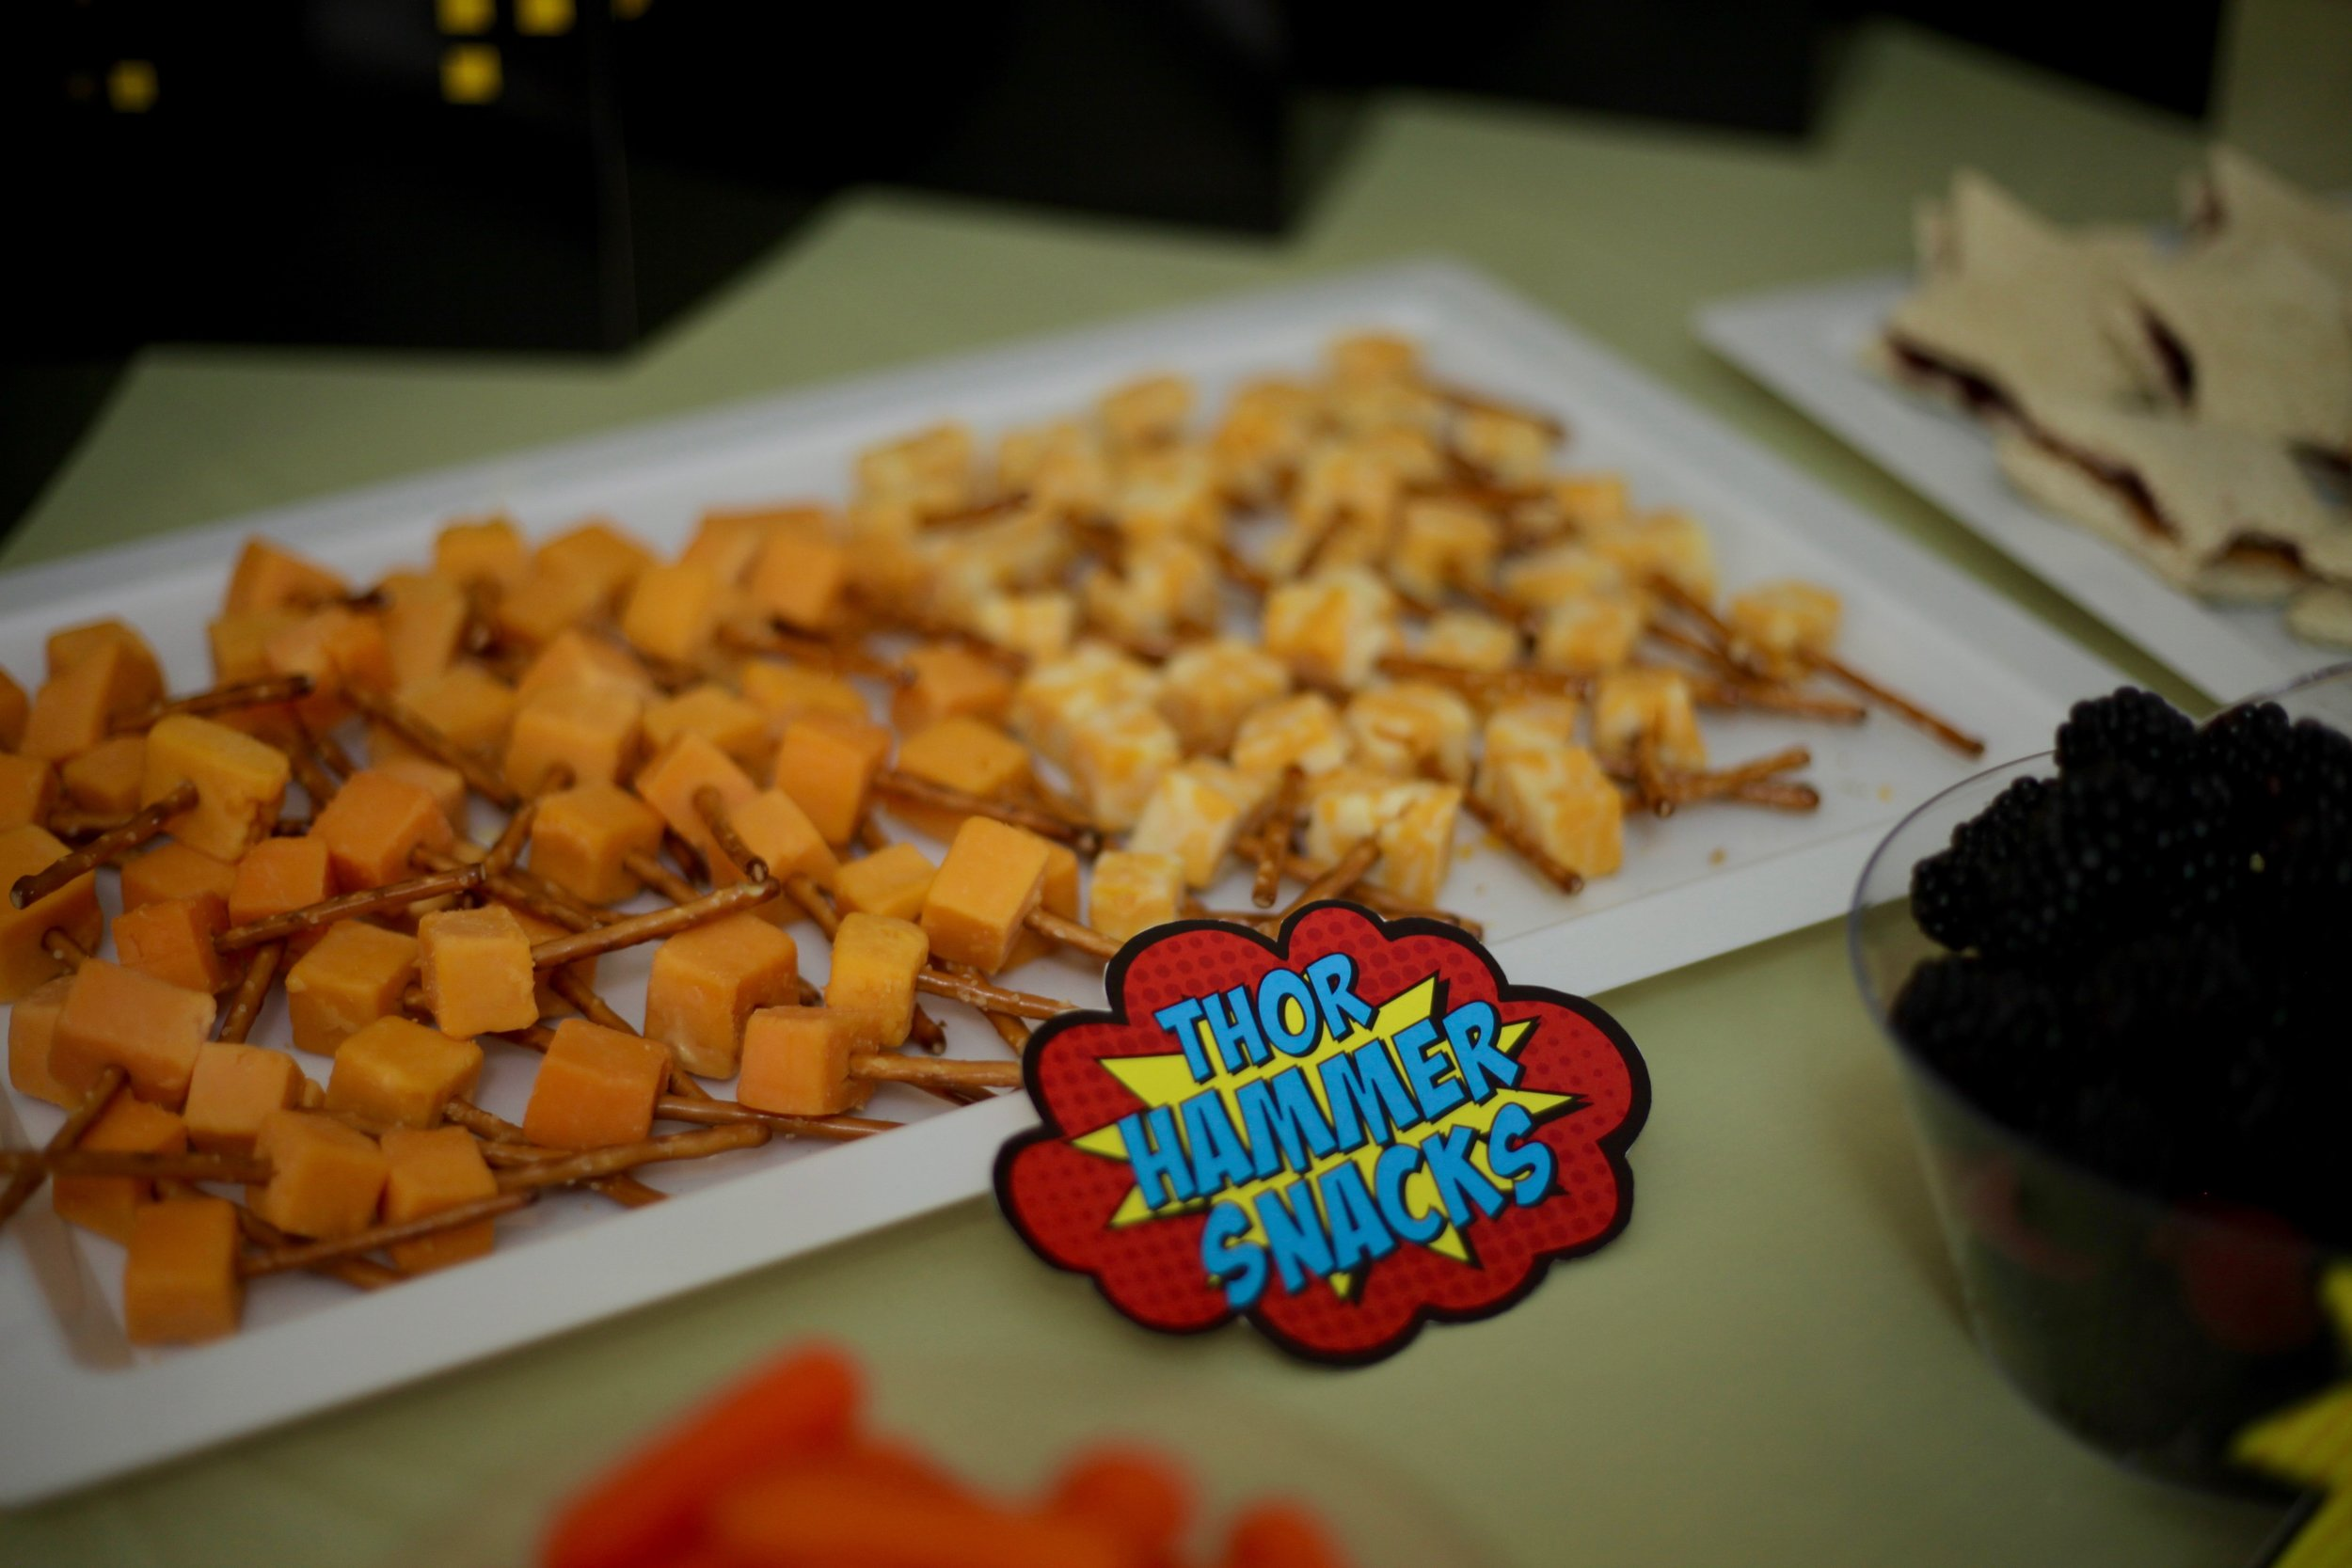 Pretzel sticks and cheese cubes made a super easy and cute Thor themed snack!